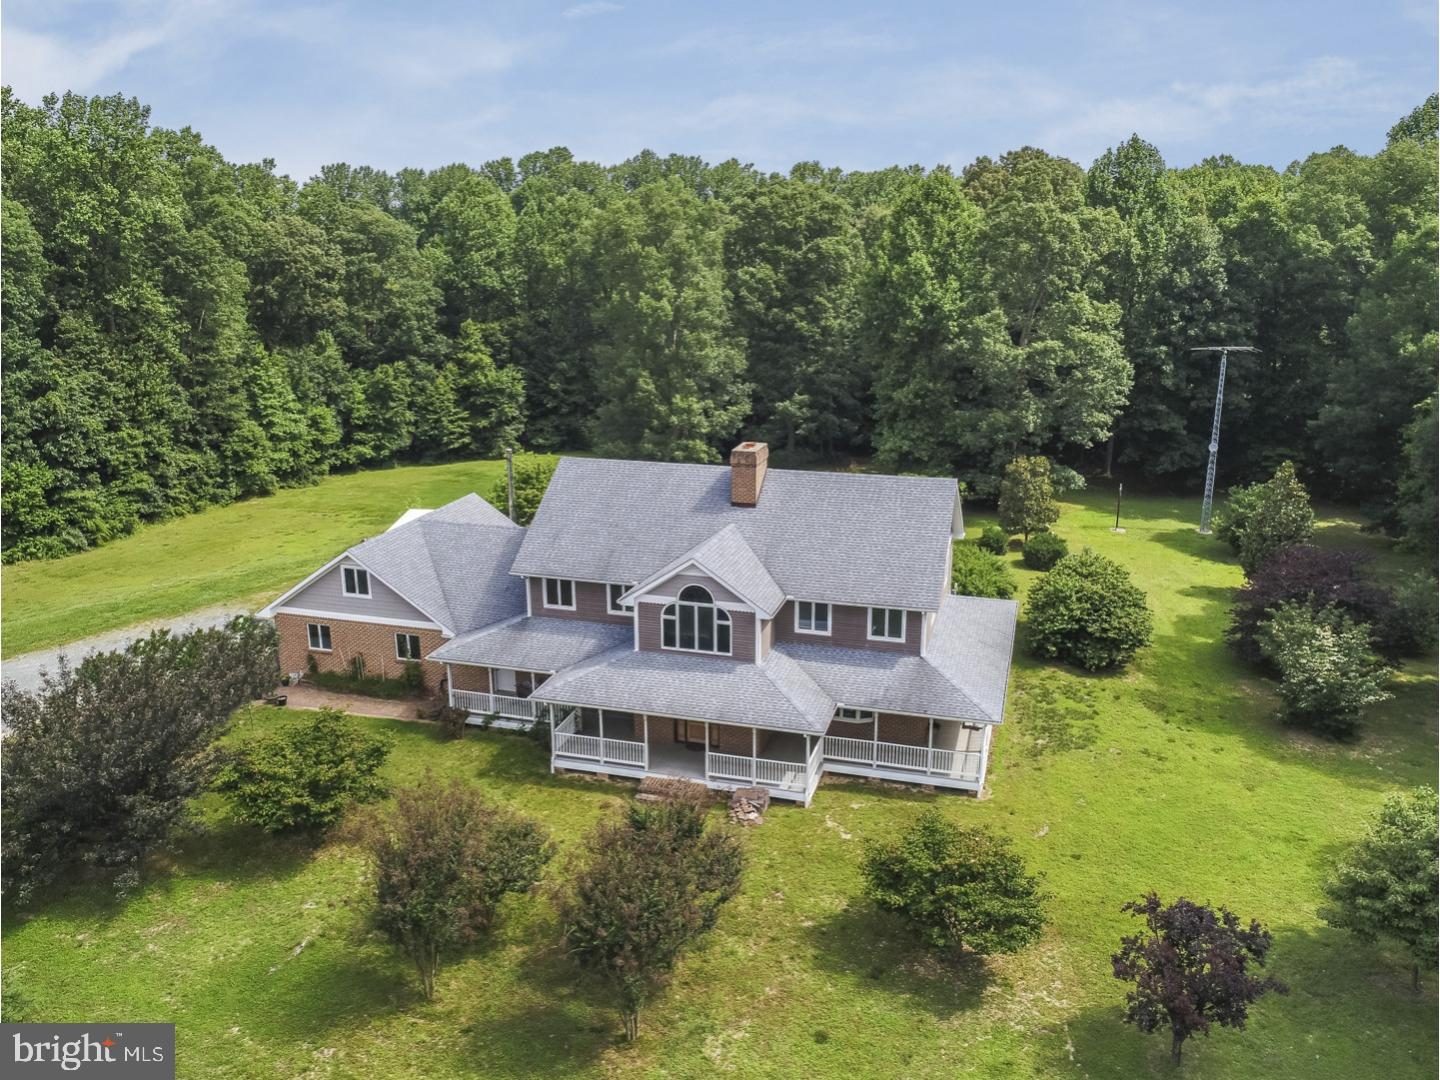 One of a kind custom built home that sits on 14+ Acres backing up to Hudson Branch Creek with beautiful, serene views.  Property has conditional use approval for a business plus two extra parcels of open space which can be used for farming, horses, goats, chickens, and so much more!  Along with the 8,400 Sq Ft home there is a 60 X 40 barn with a loft that has potential for 2 apartments and a 58 X 32 Lean-To, dog kennels and wood shed.  As you enter this home from the beautiful wrap around porch you will find features such as large gourmet kitchen with X-large island, ceramic tile floors and 11 X 10 Pantry.  23 X 11 Mudroom, 19 x 19 Sun-room, 3 sided fireplace and real oak wood 1 inch thick floors through out main floor.  2nd floor boasts 4 large bedrooms, a bonus room over garage that is currently being used for a business, but can easily be turned into an in-law suite.  The home is handicap accessible, and there is even an elevator, large enough for a wheelchair, that will take you to all 3 floors (no carrying laundry up or down stairs!!)  This home has so much to offer, you have to see it to appreciate.  What are you waiting for, make your appointment ASAP!!!